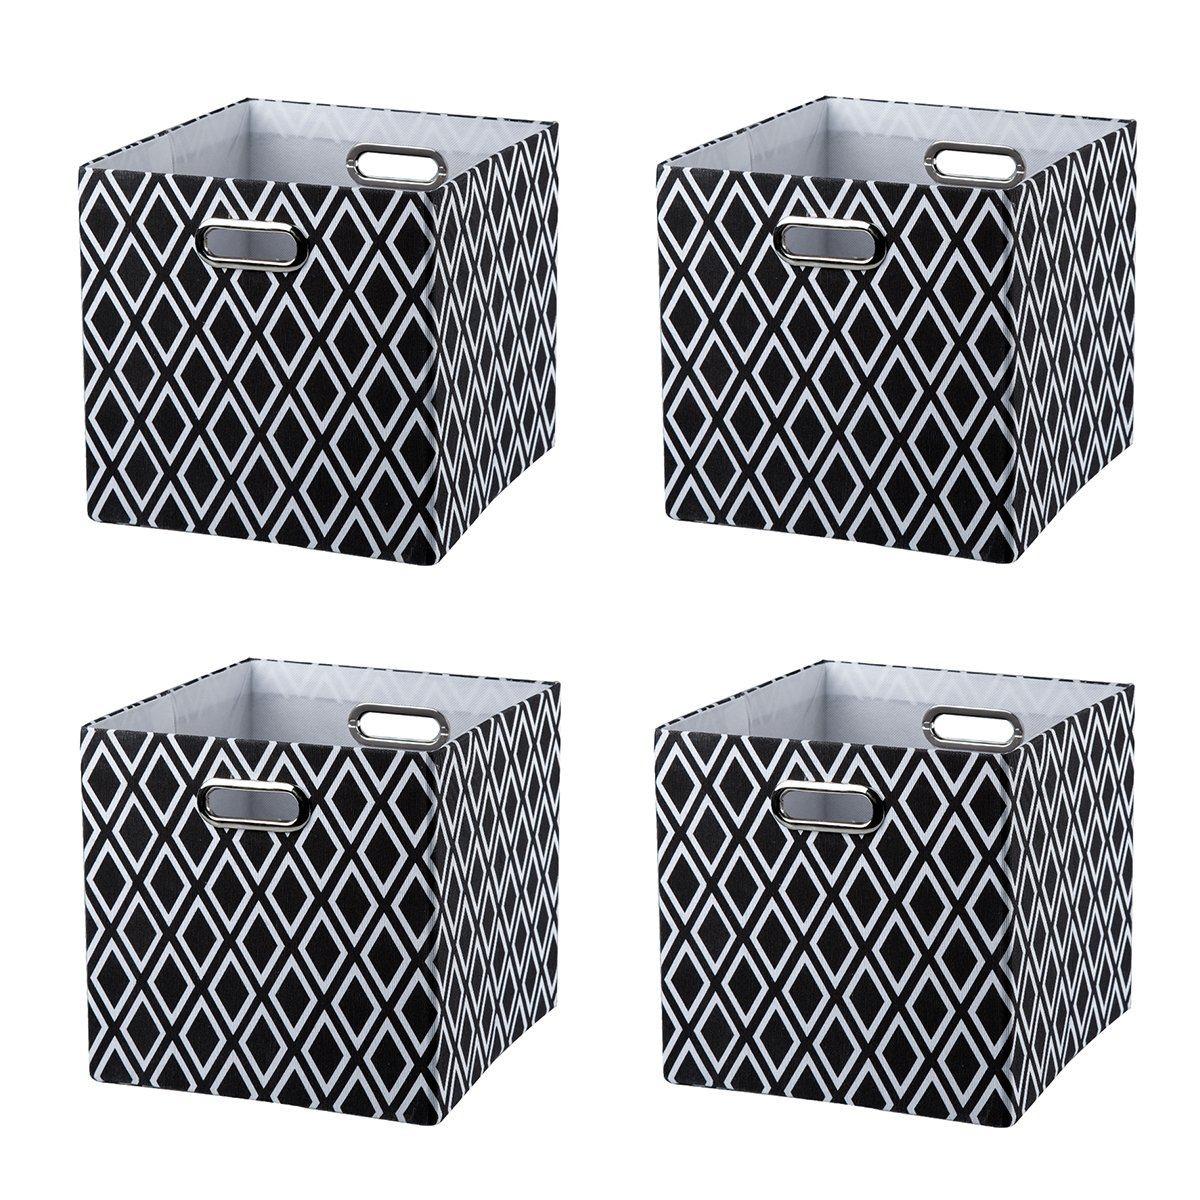 BAIST Canvas Storage Cubes,Pretty Black and White Square Collapsible Bed Storage Bins for Kids Toys Books, Set of 4 by BAIST